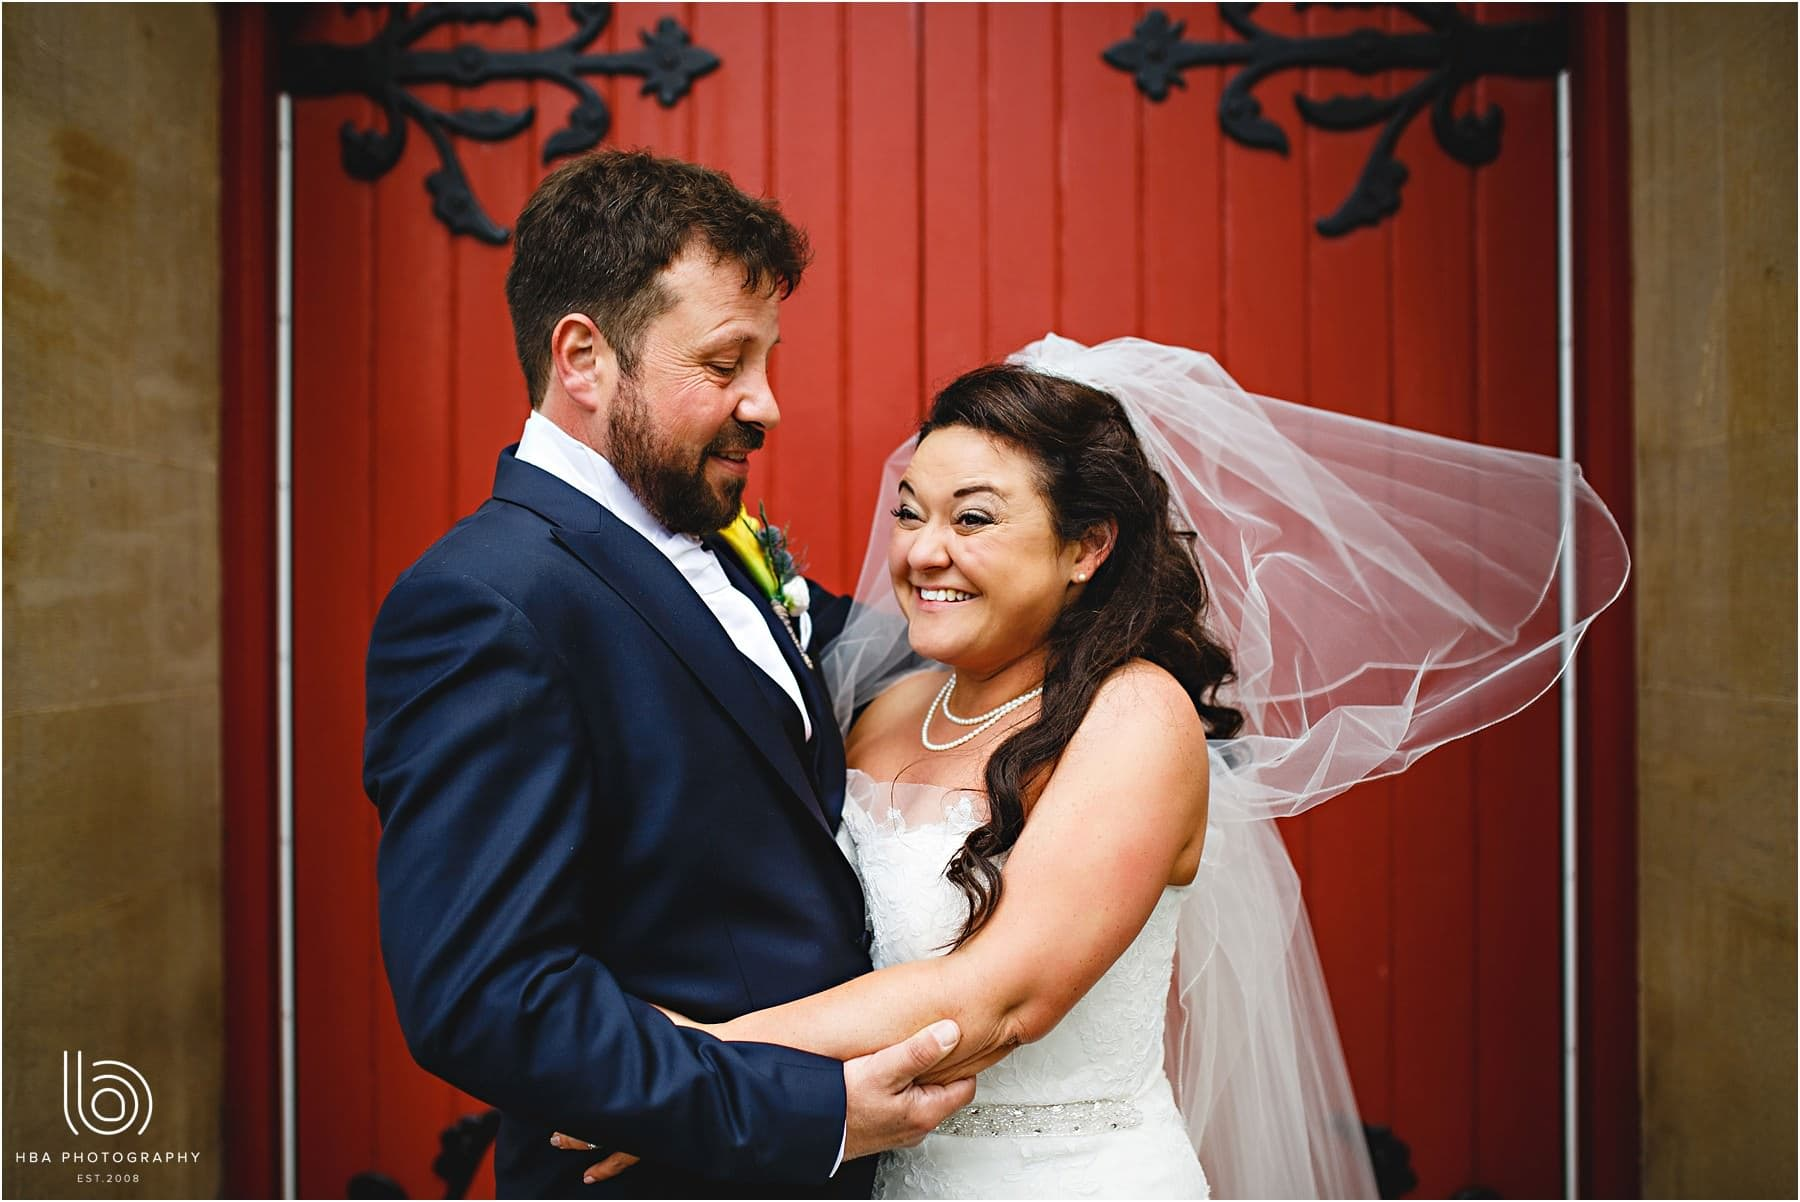 the bride and groom in front of a red door